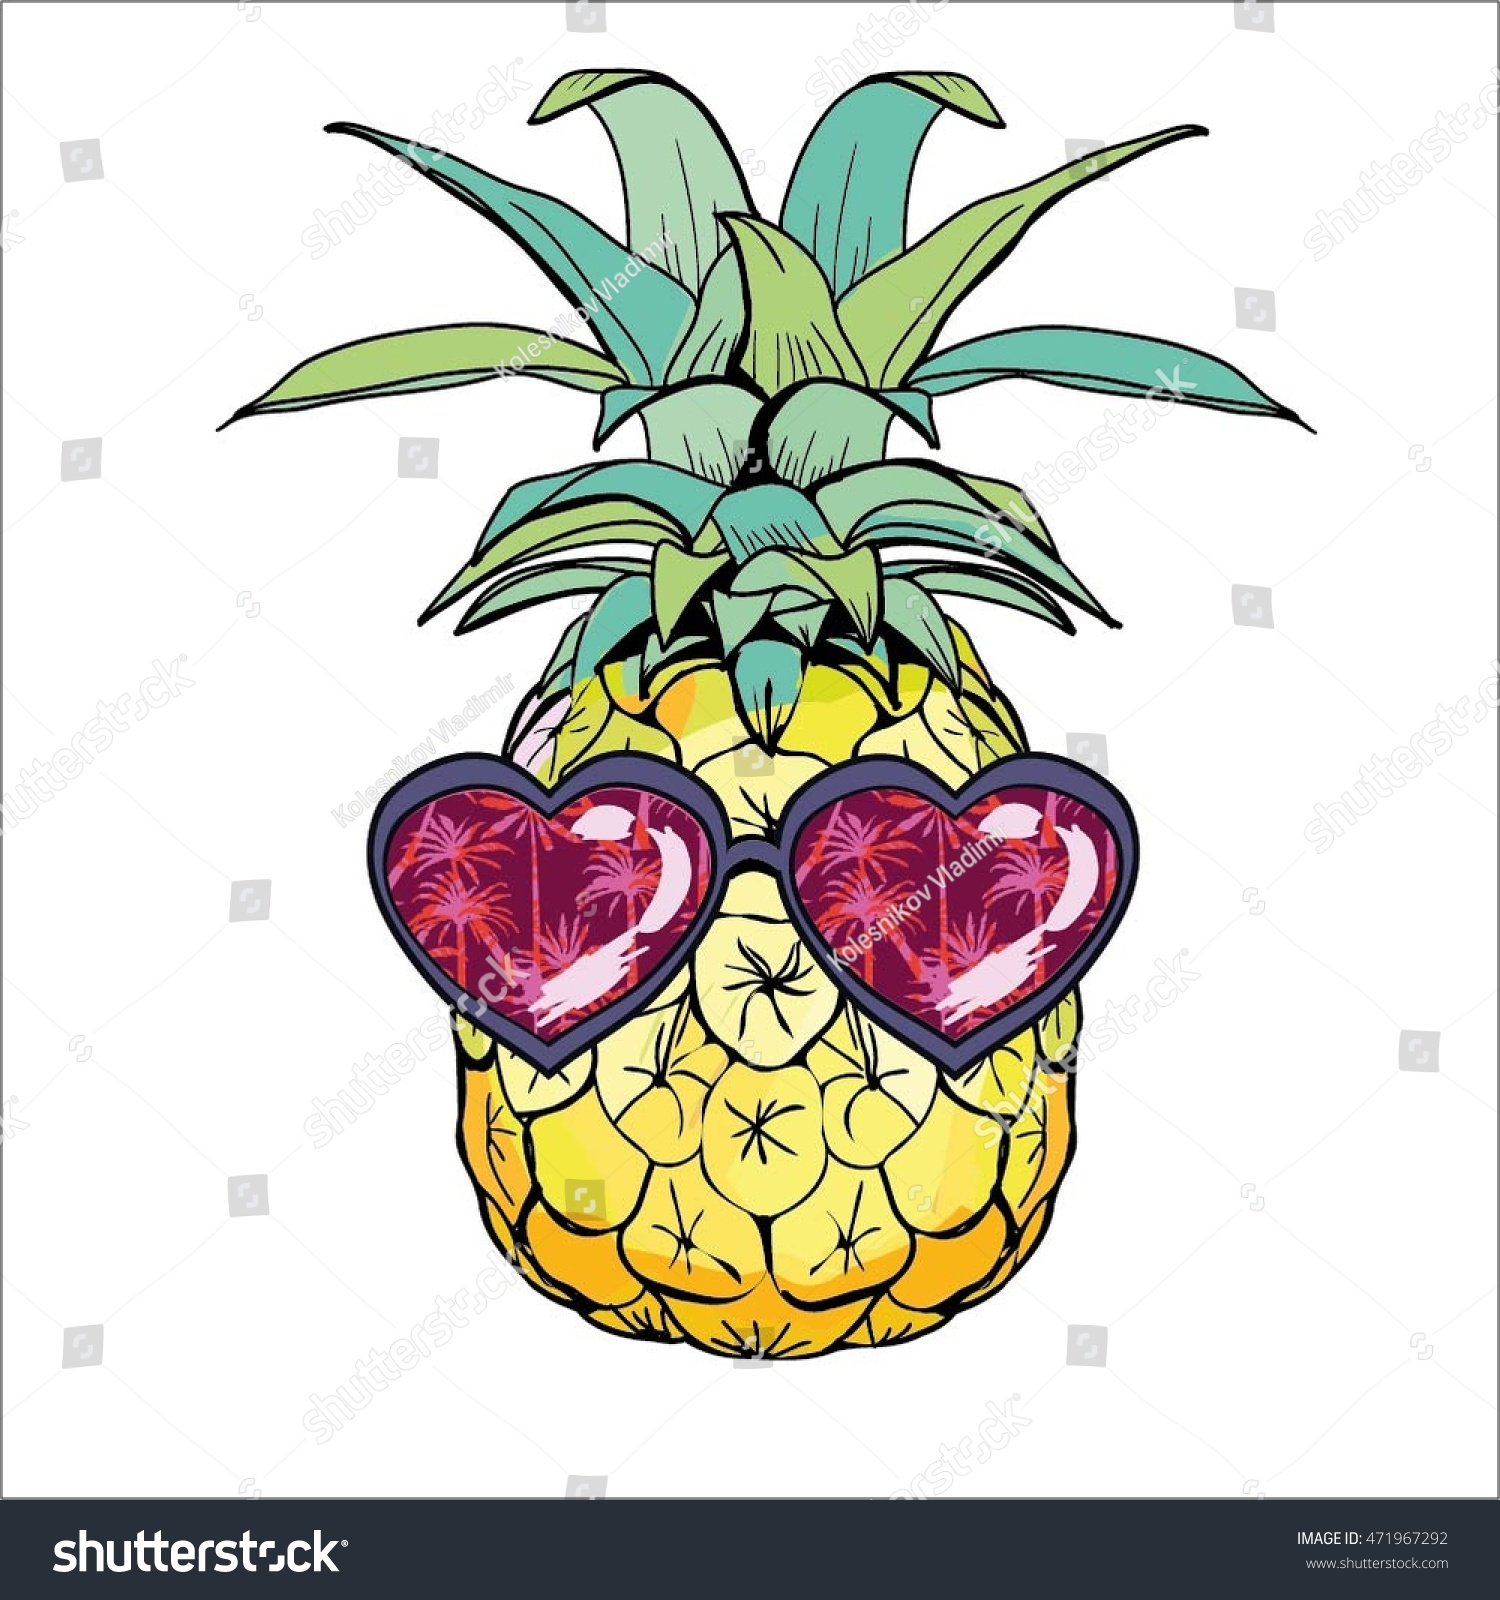 pineapple with sunglasses clipart. pineapple with glasses-vector illustration sunglasses clipart